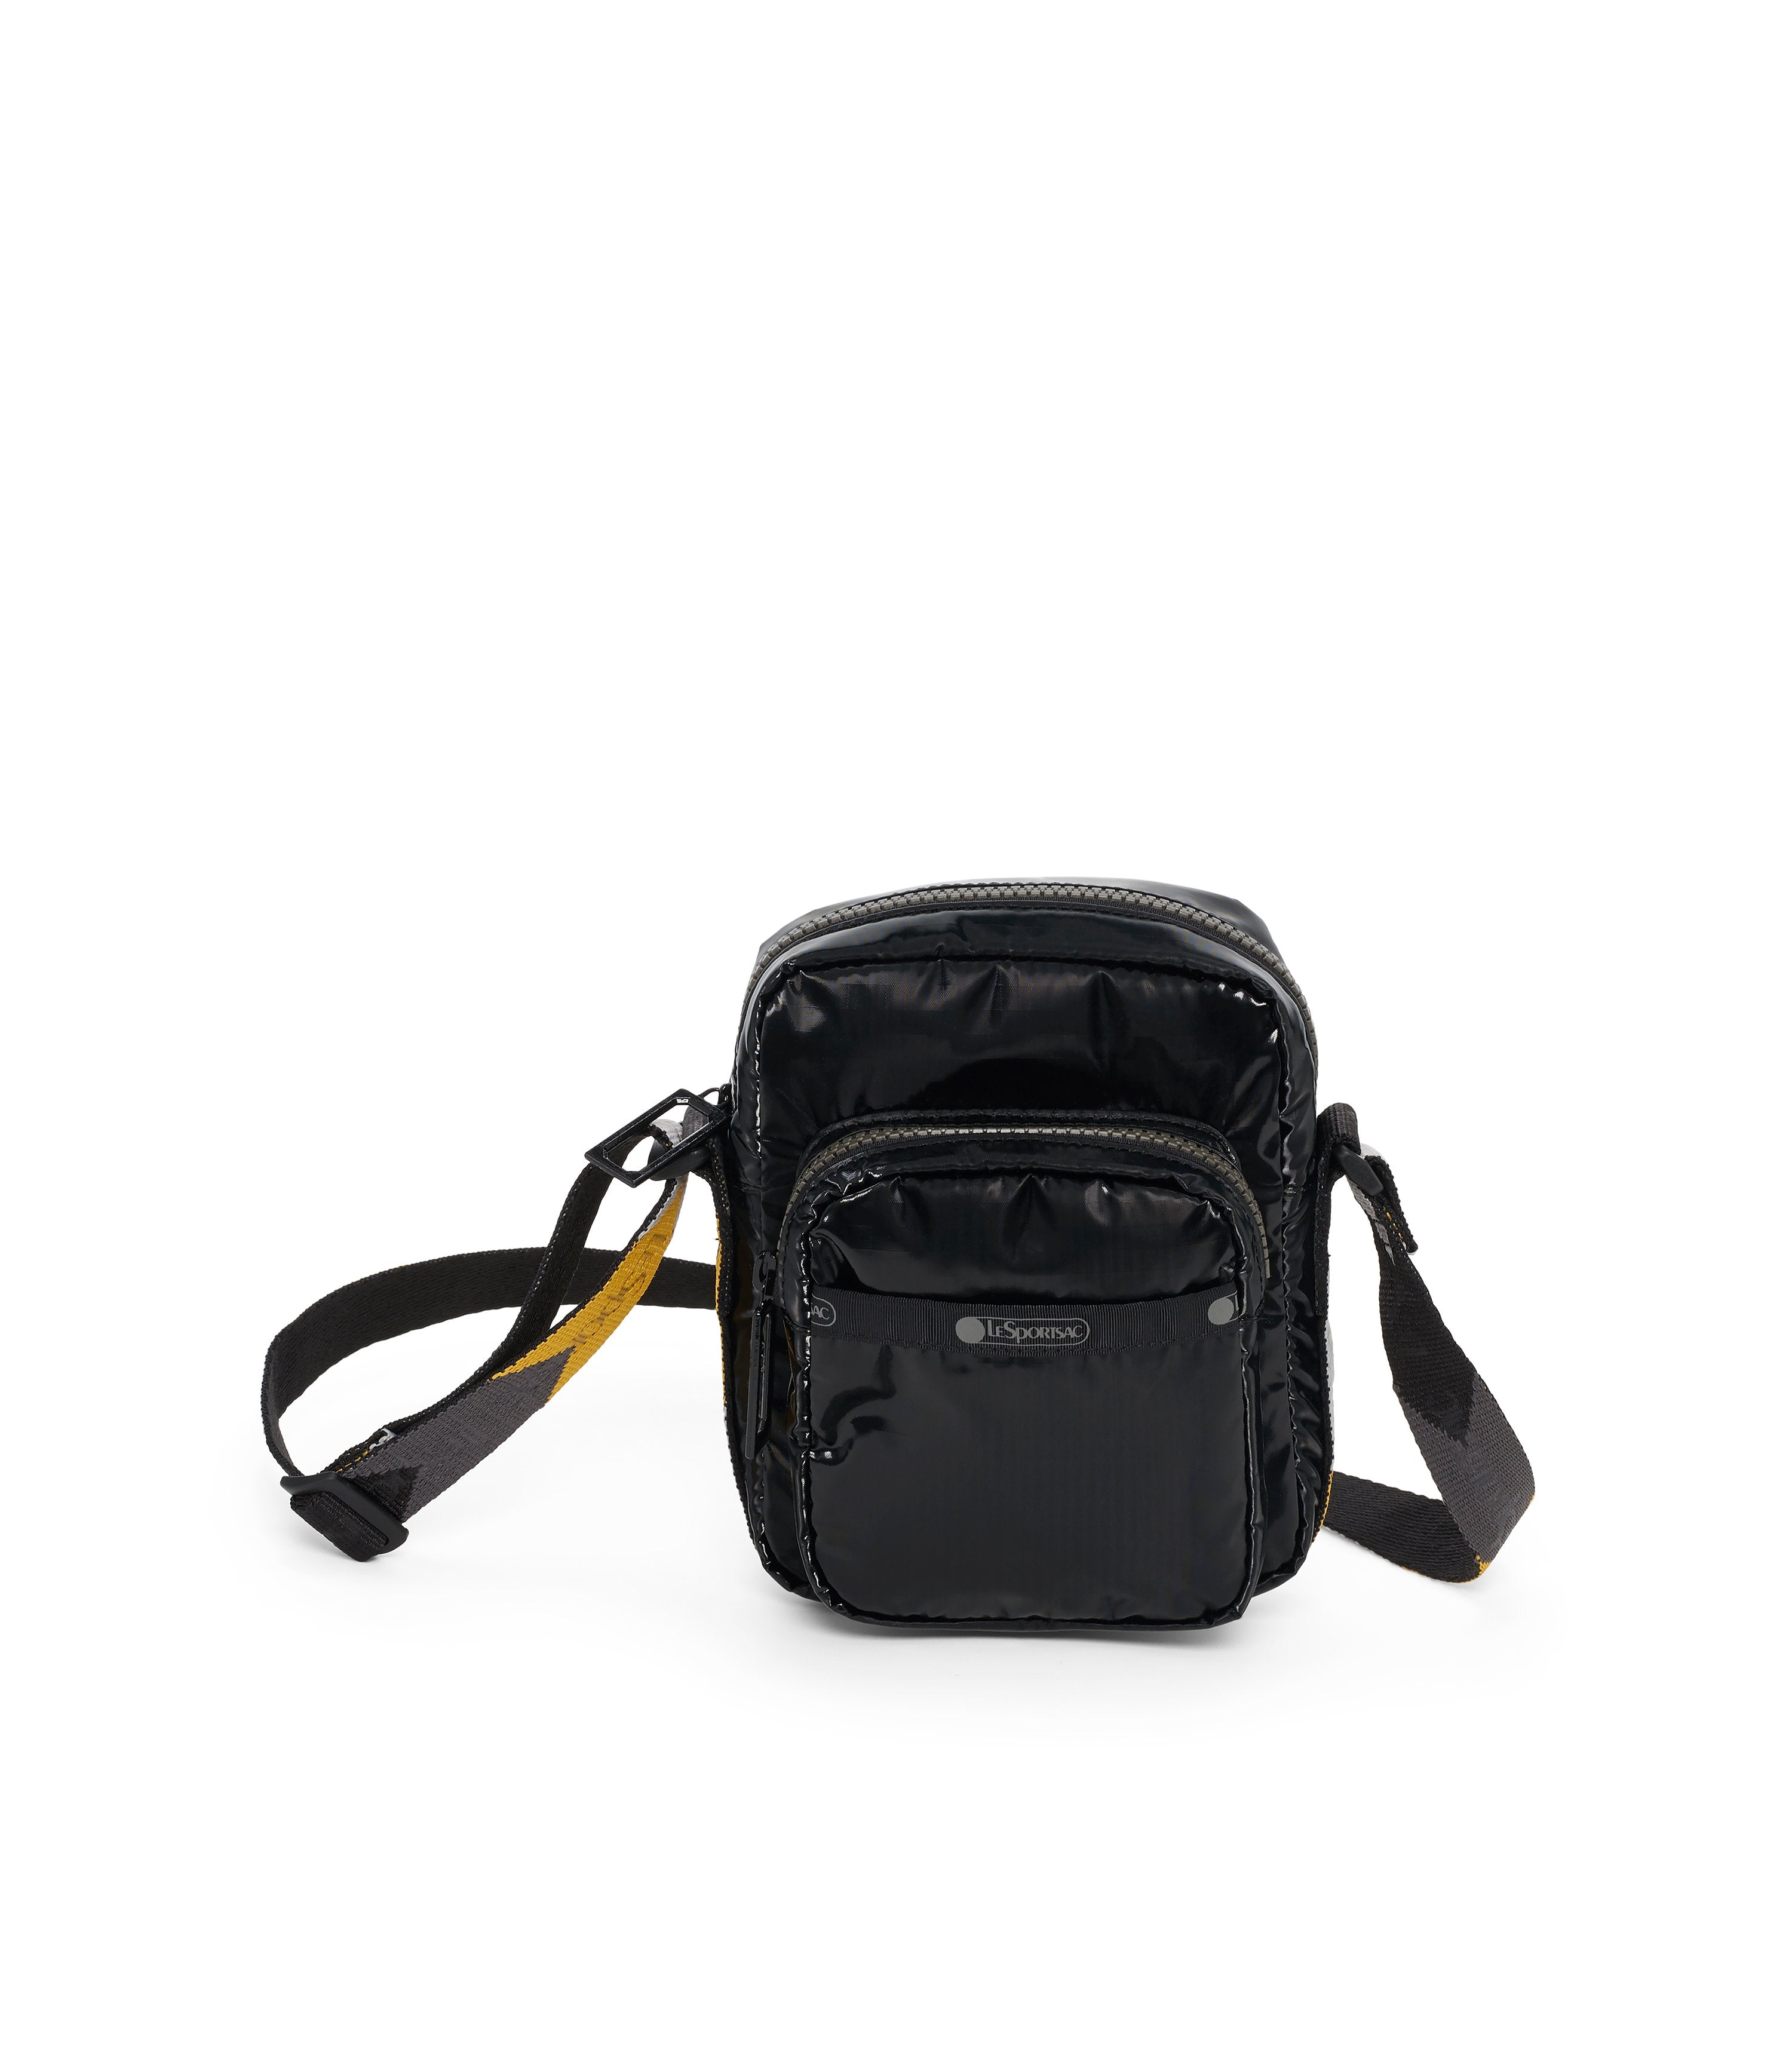 Charlie Crossbody, Handbags and Crossbody Bags, LeSportsac, Black Arrow Liquid Patent